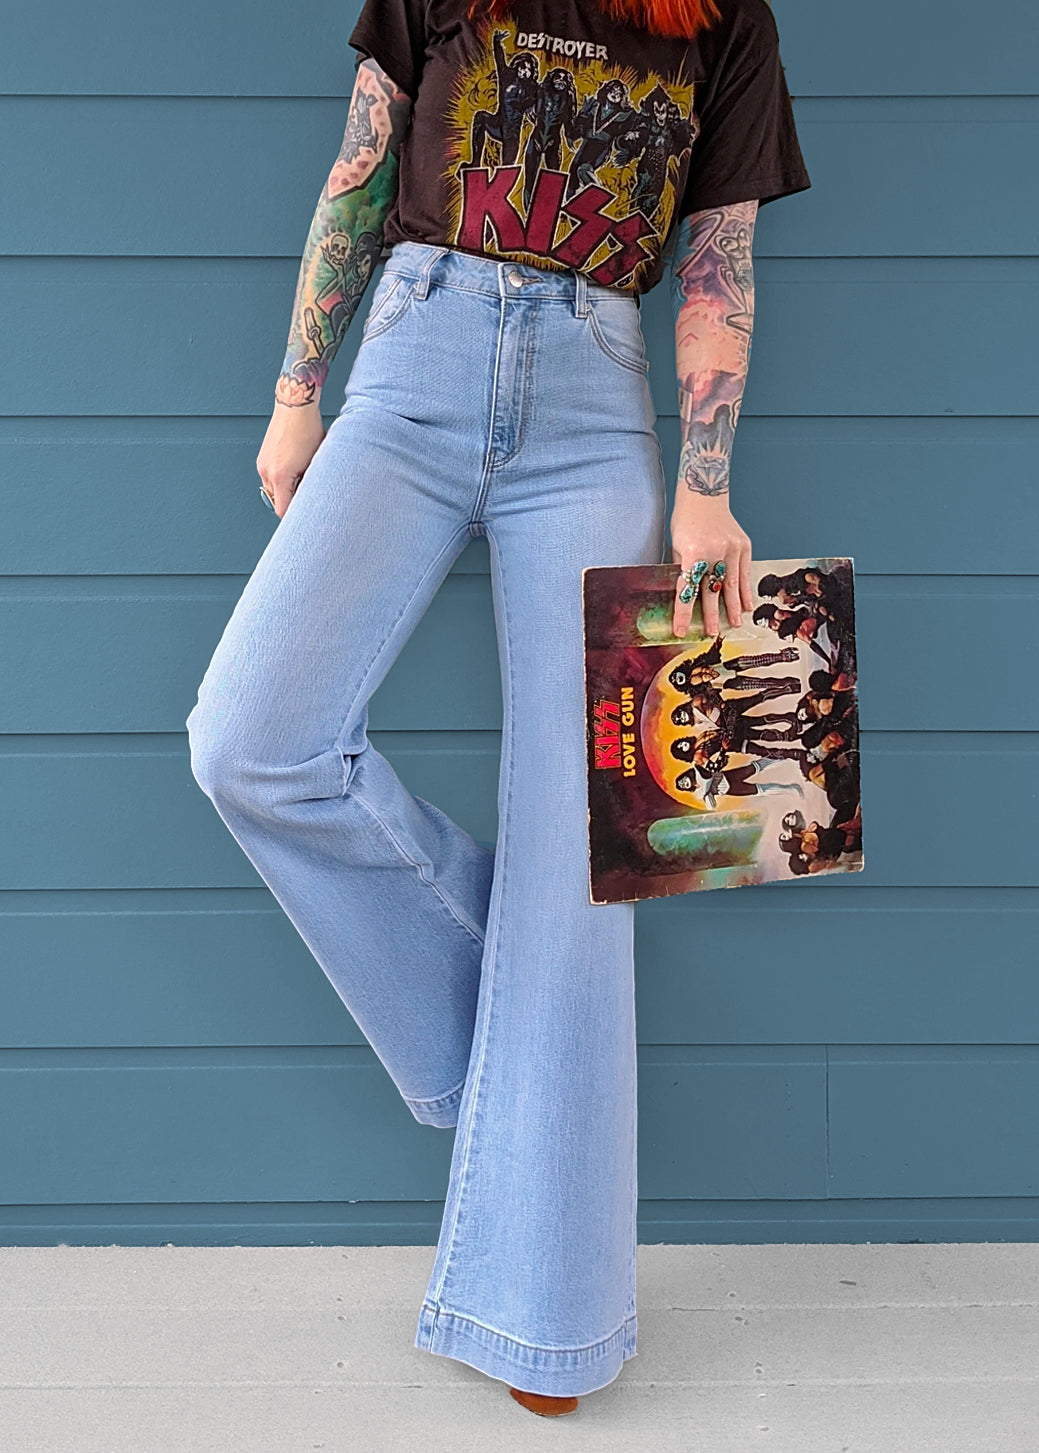 Rolla's Jeans Tash Blue Stretch Denim Flare Bell Bottom Jeans